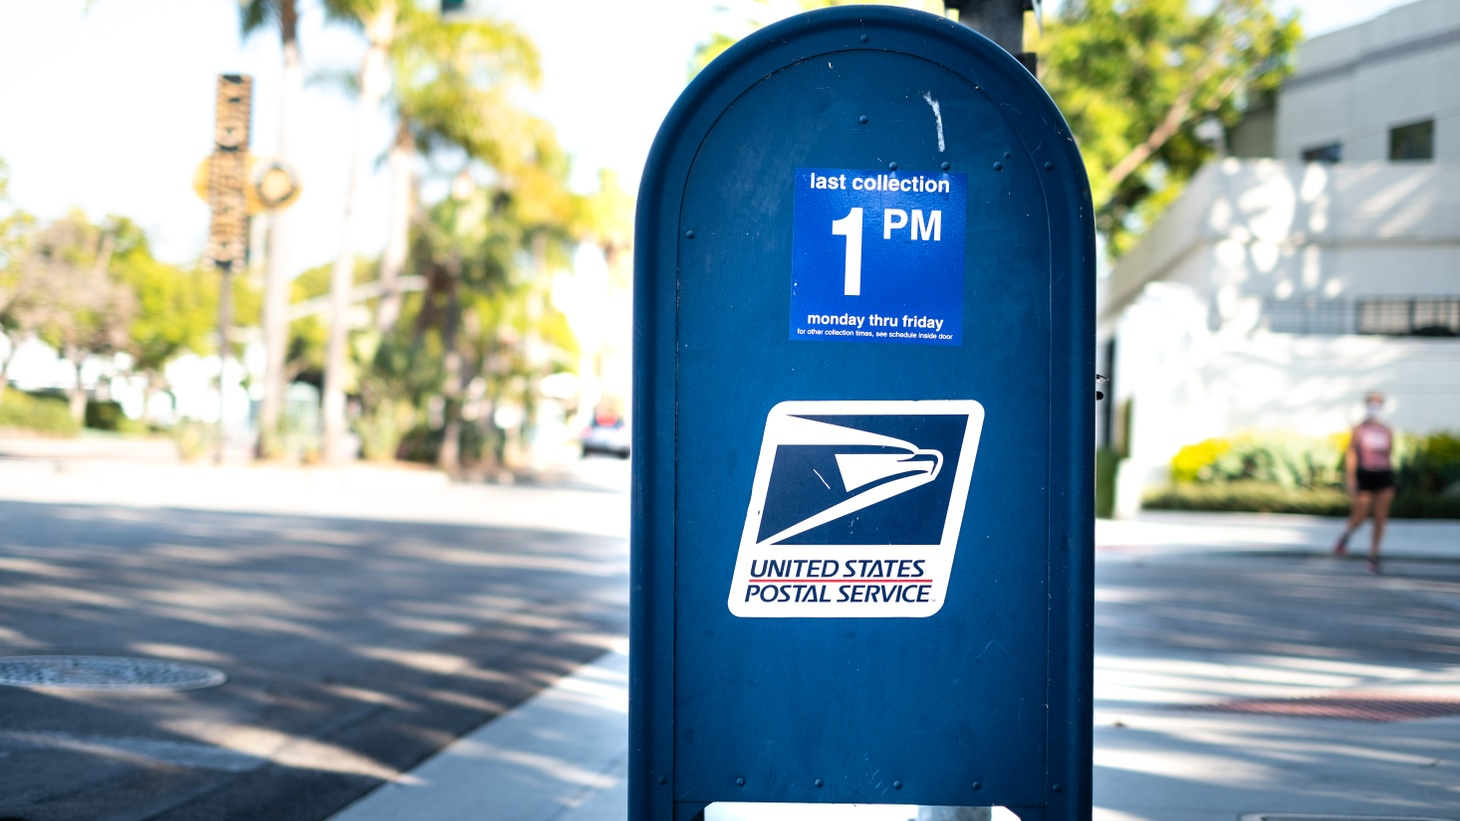 More people are becoming pen pals to support the U.S. Postal Service and help beat quarantine loneliness.